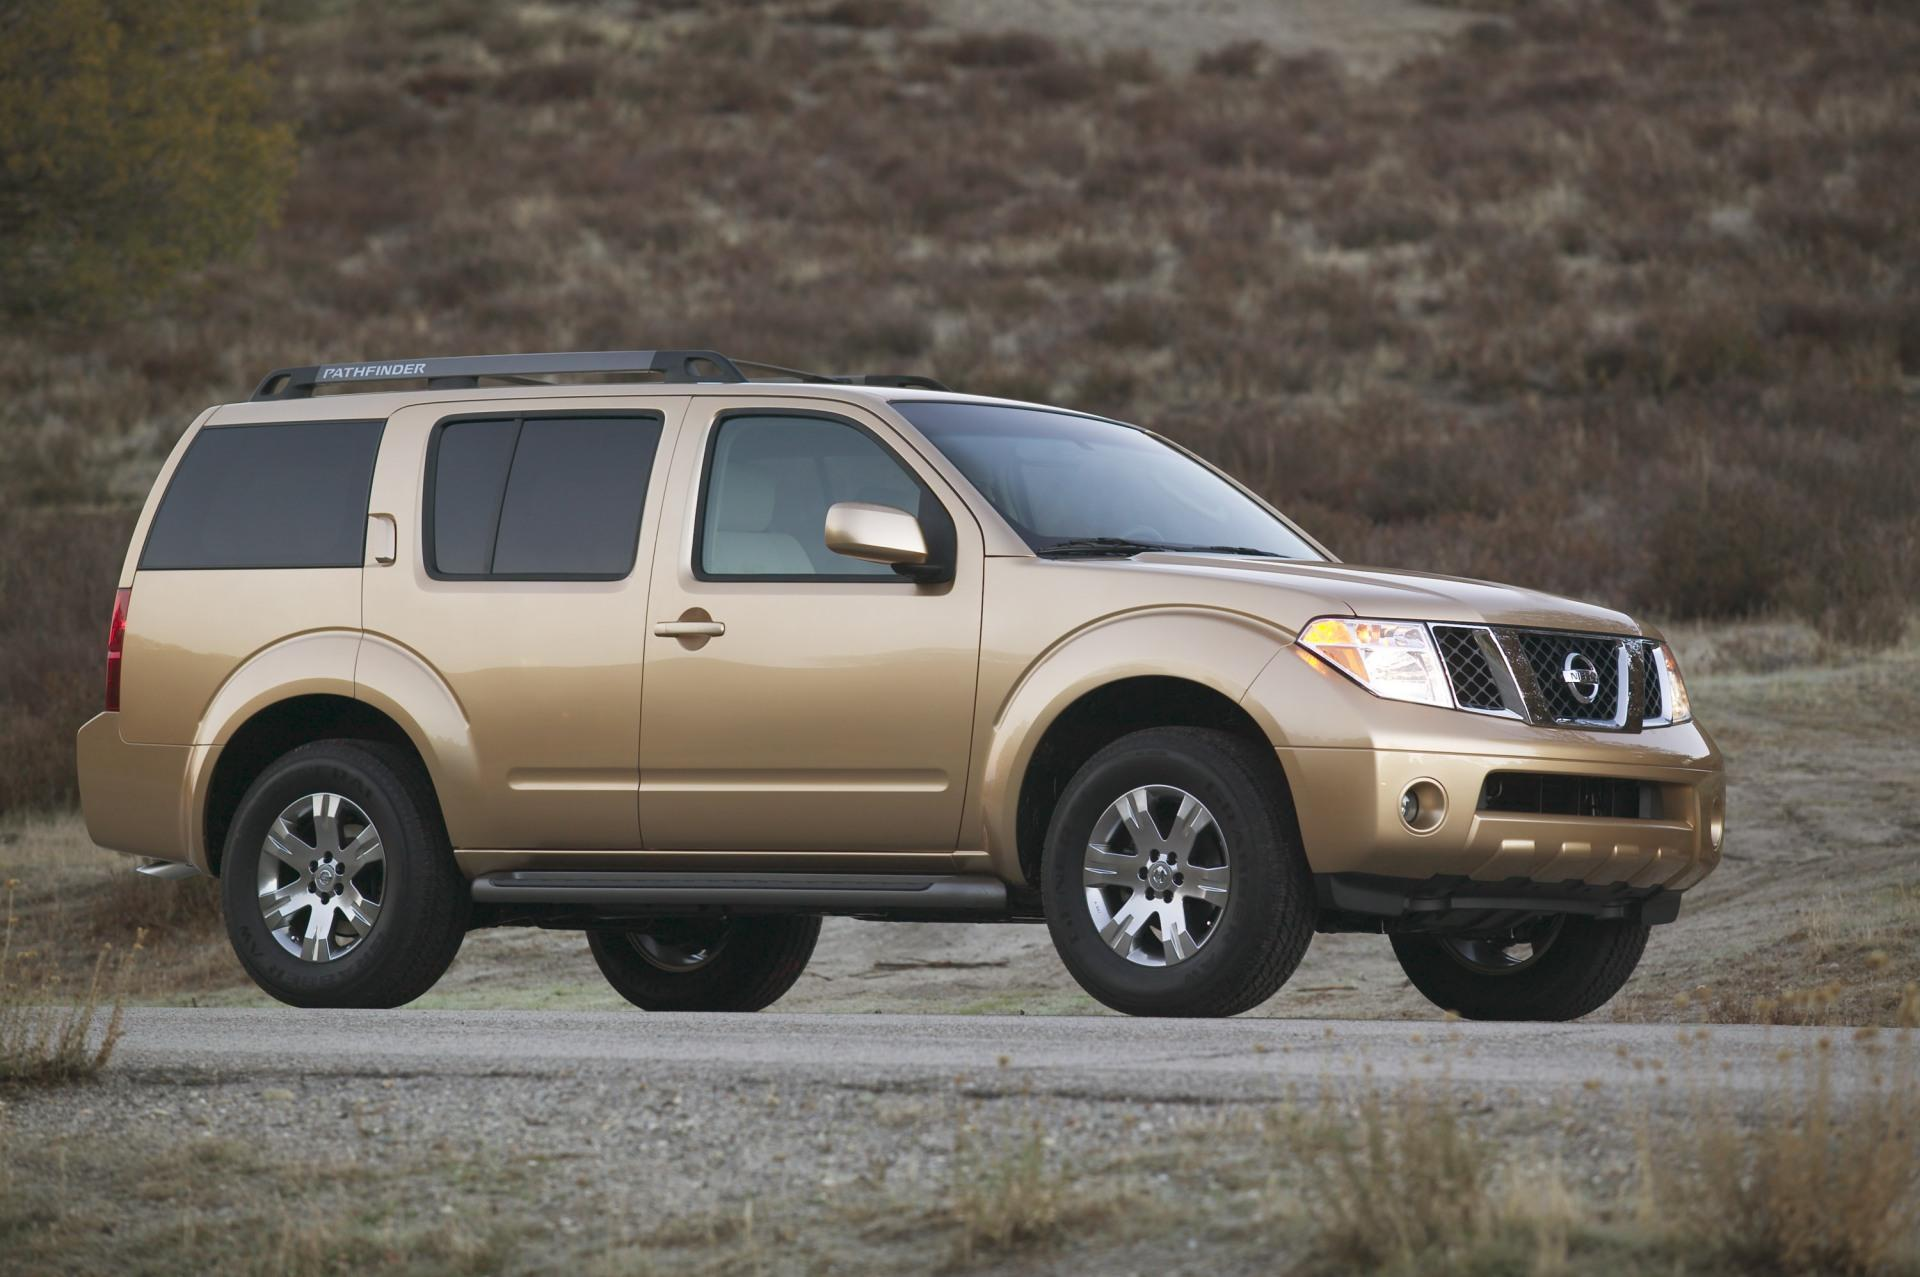 2007 nissan pathfinder images photo 2007 nissan pathfinder suv image. Black Bedroom Furniture Sets. Home Design Ideas